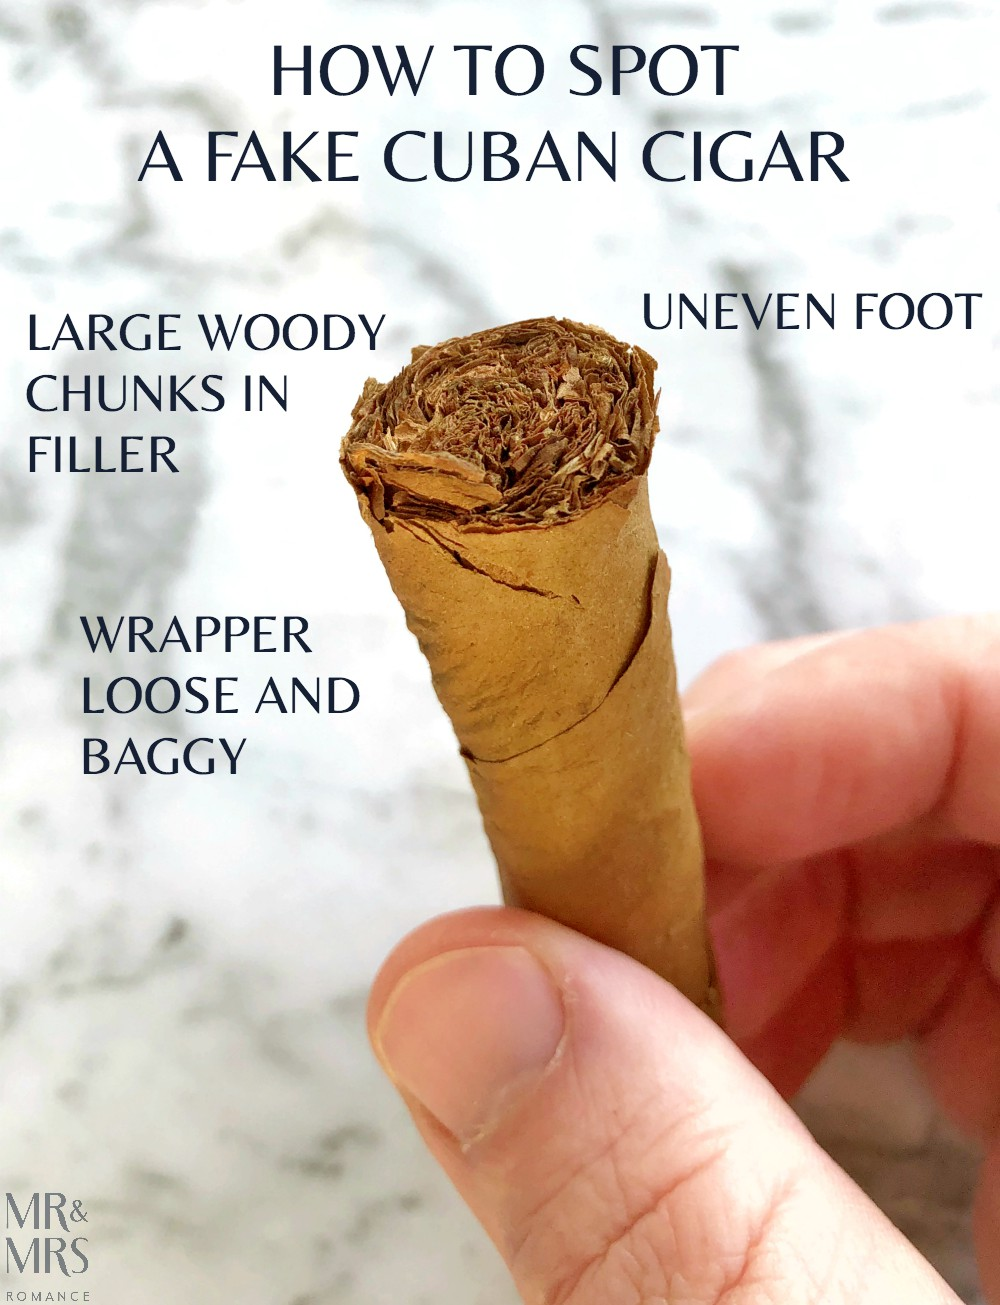 How to spot a fake Cuban cigar - diagram